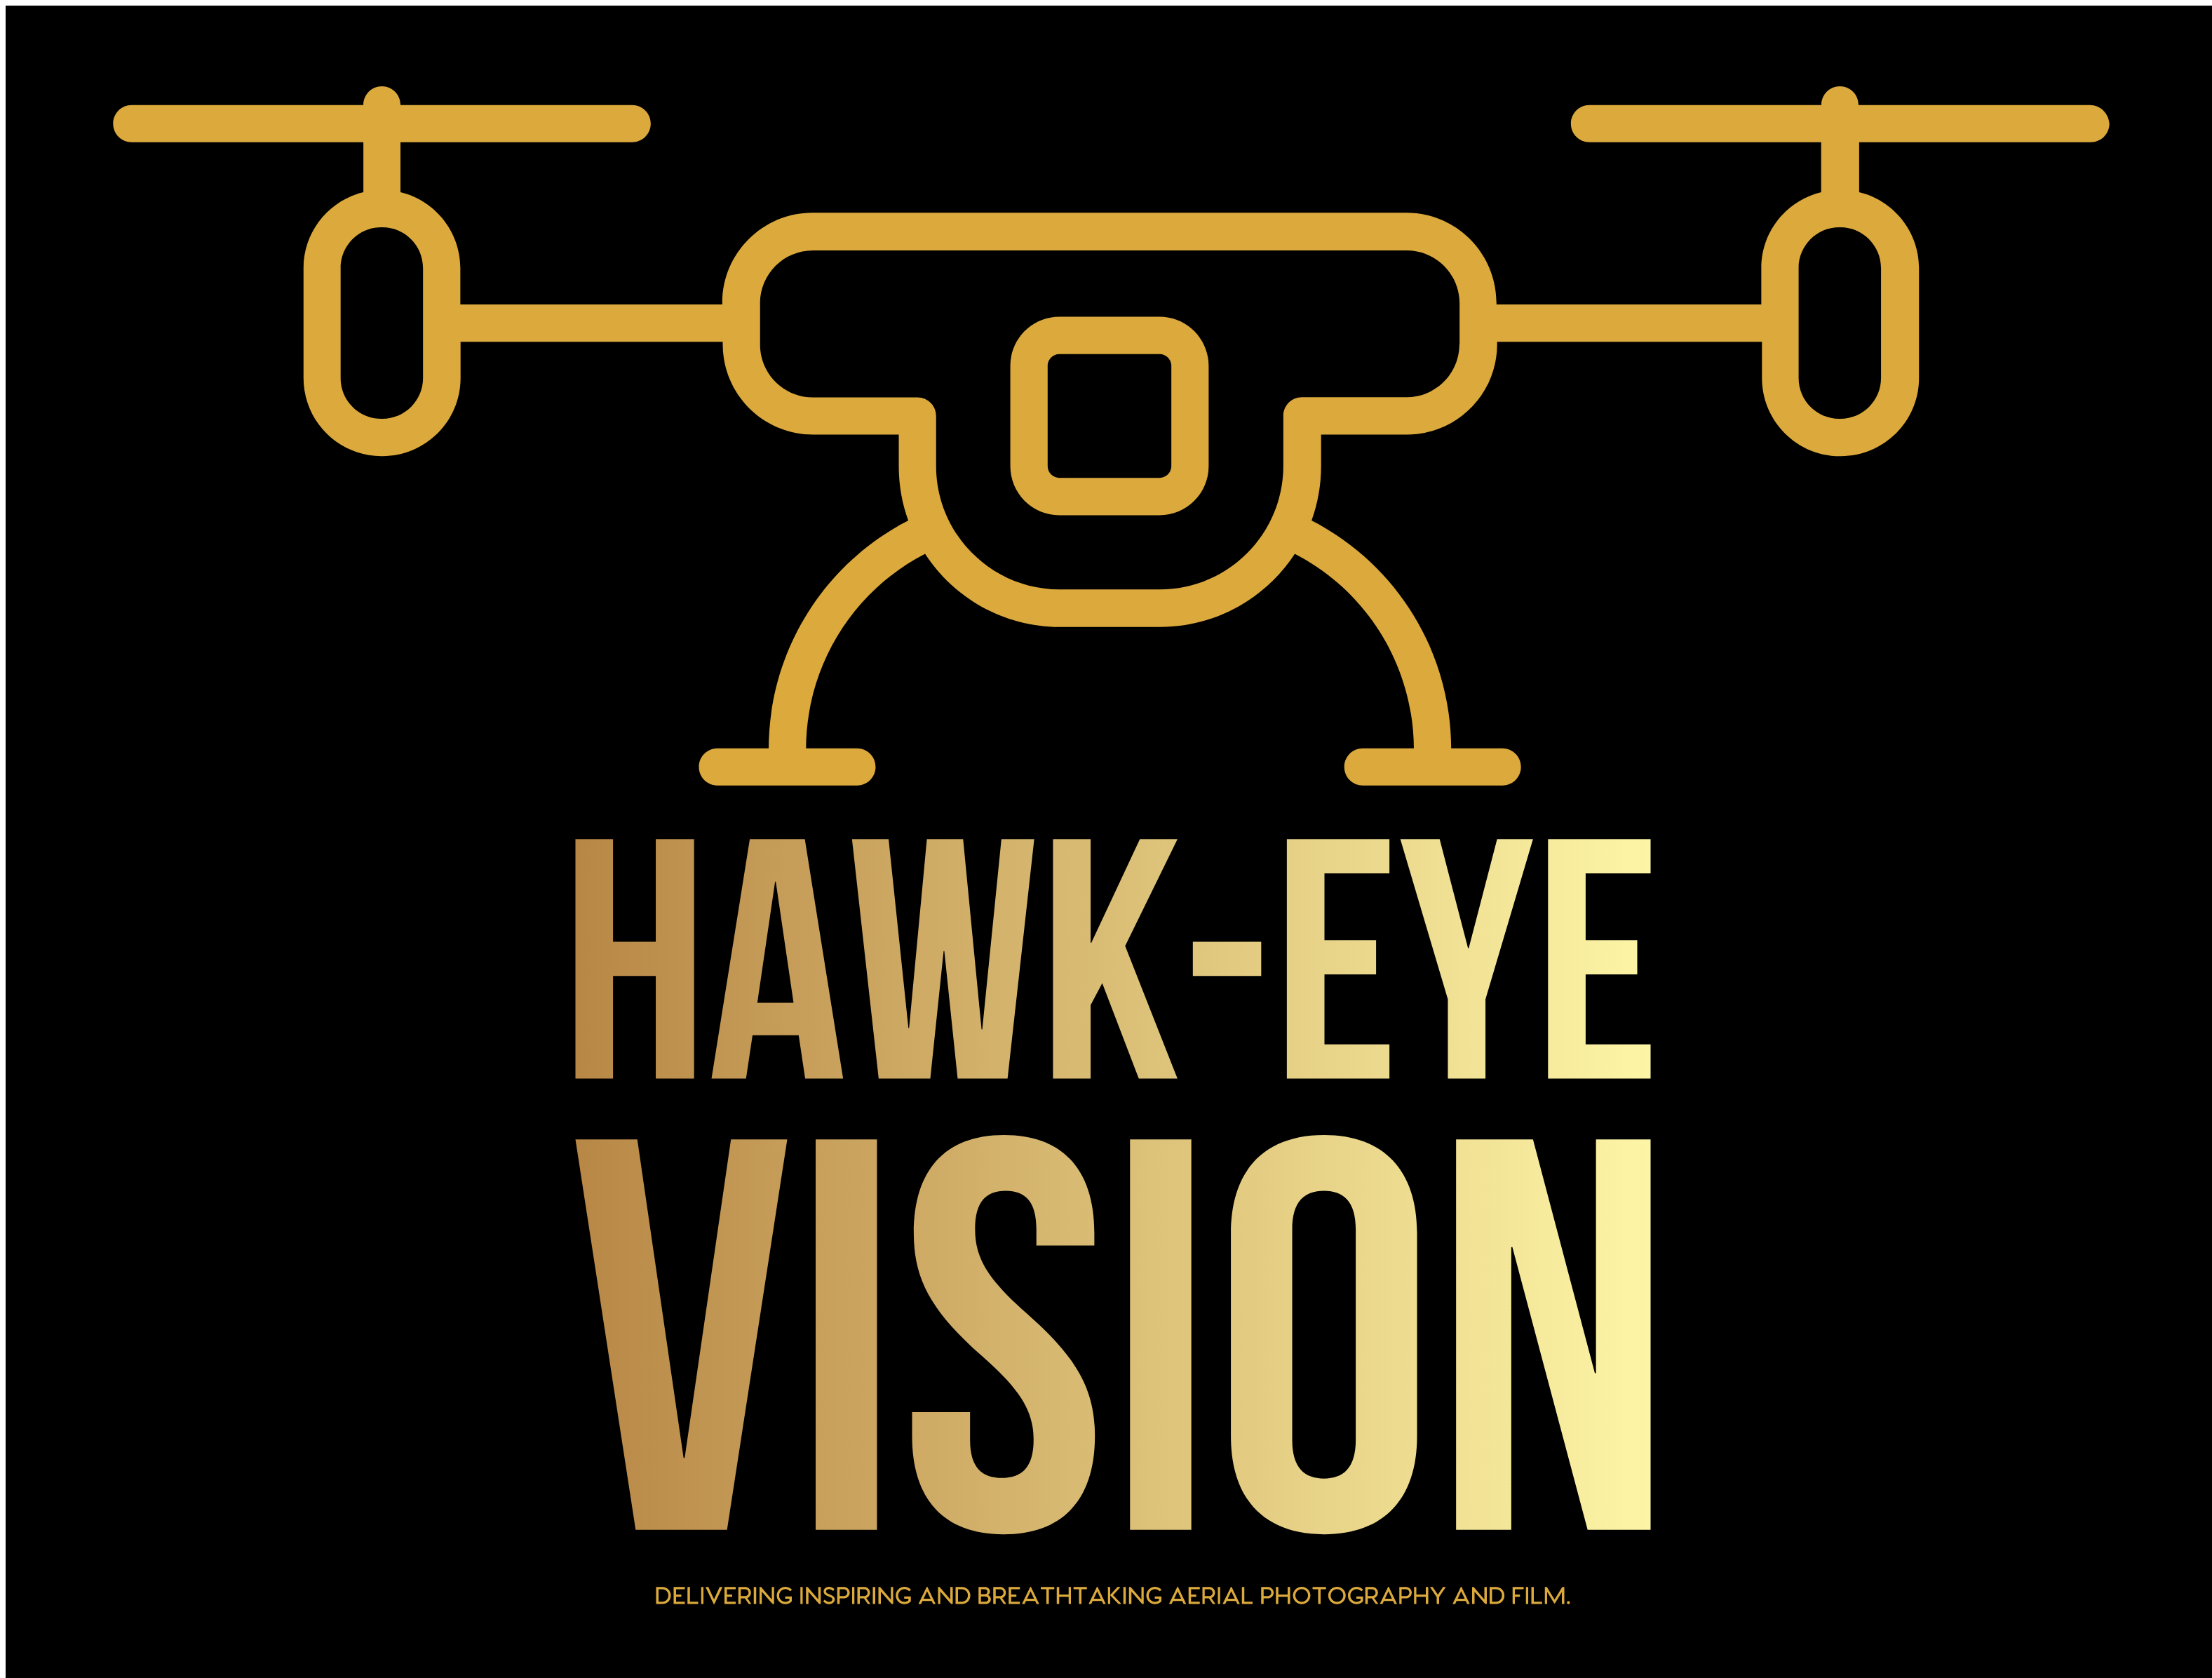 Hawk-Eye Vision Ltd